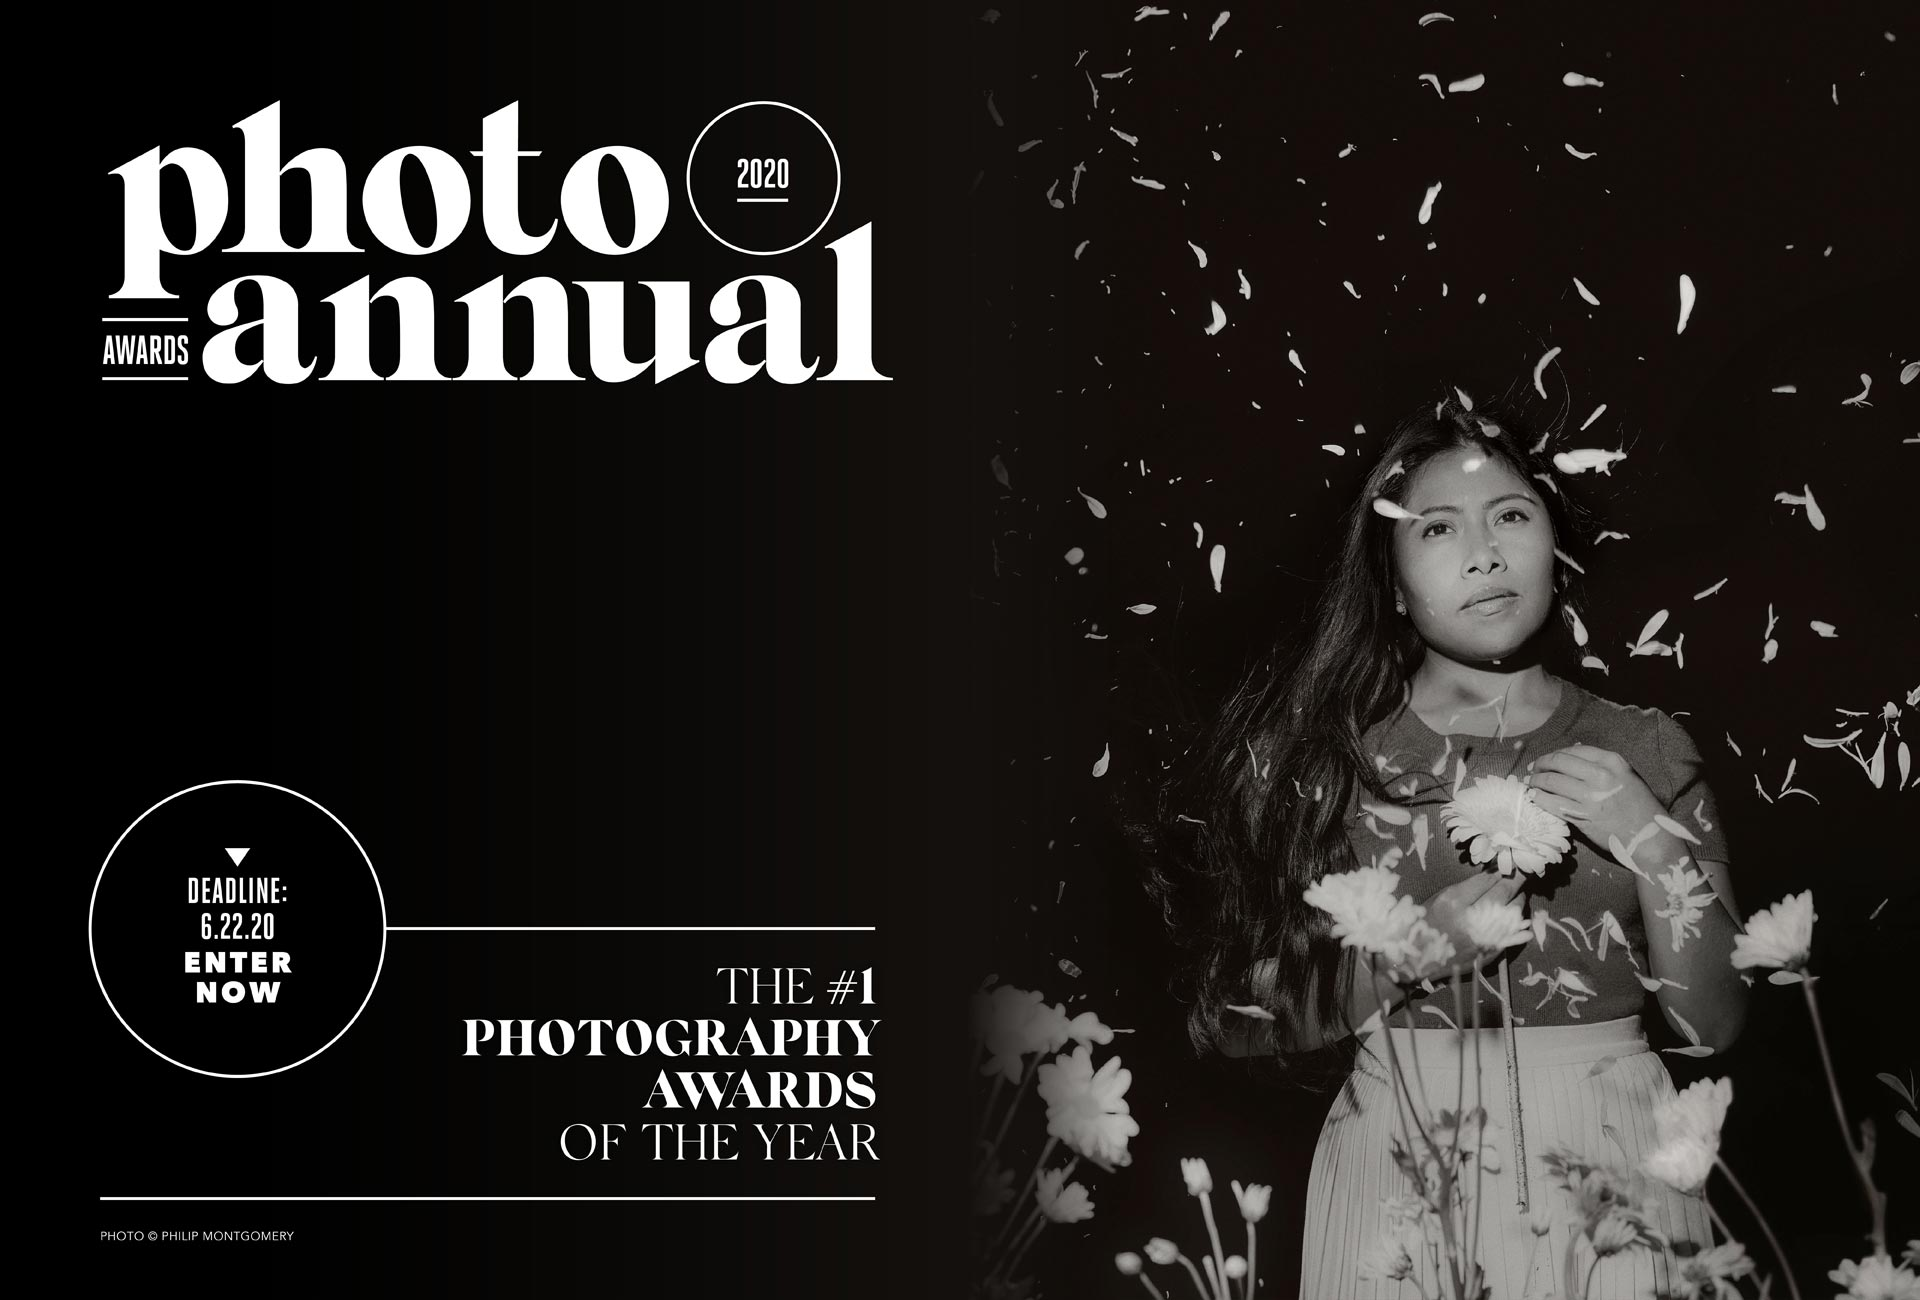 Enter the Photo Annual Awards! DEADLINE 6/22/20